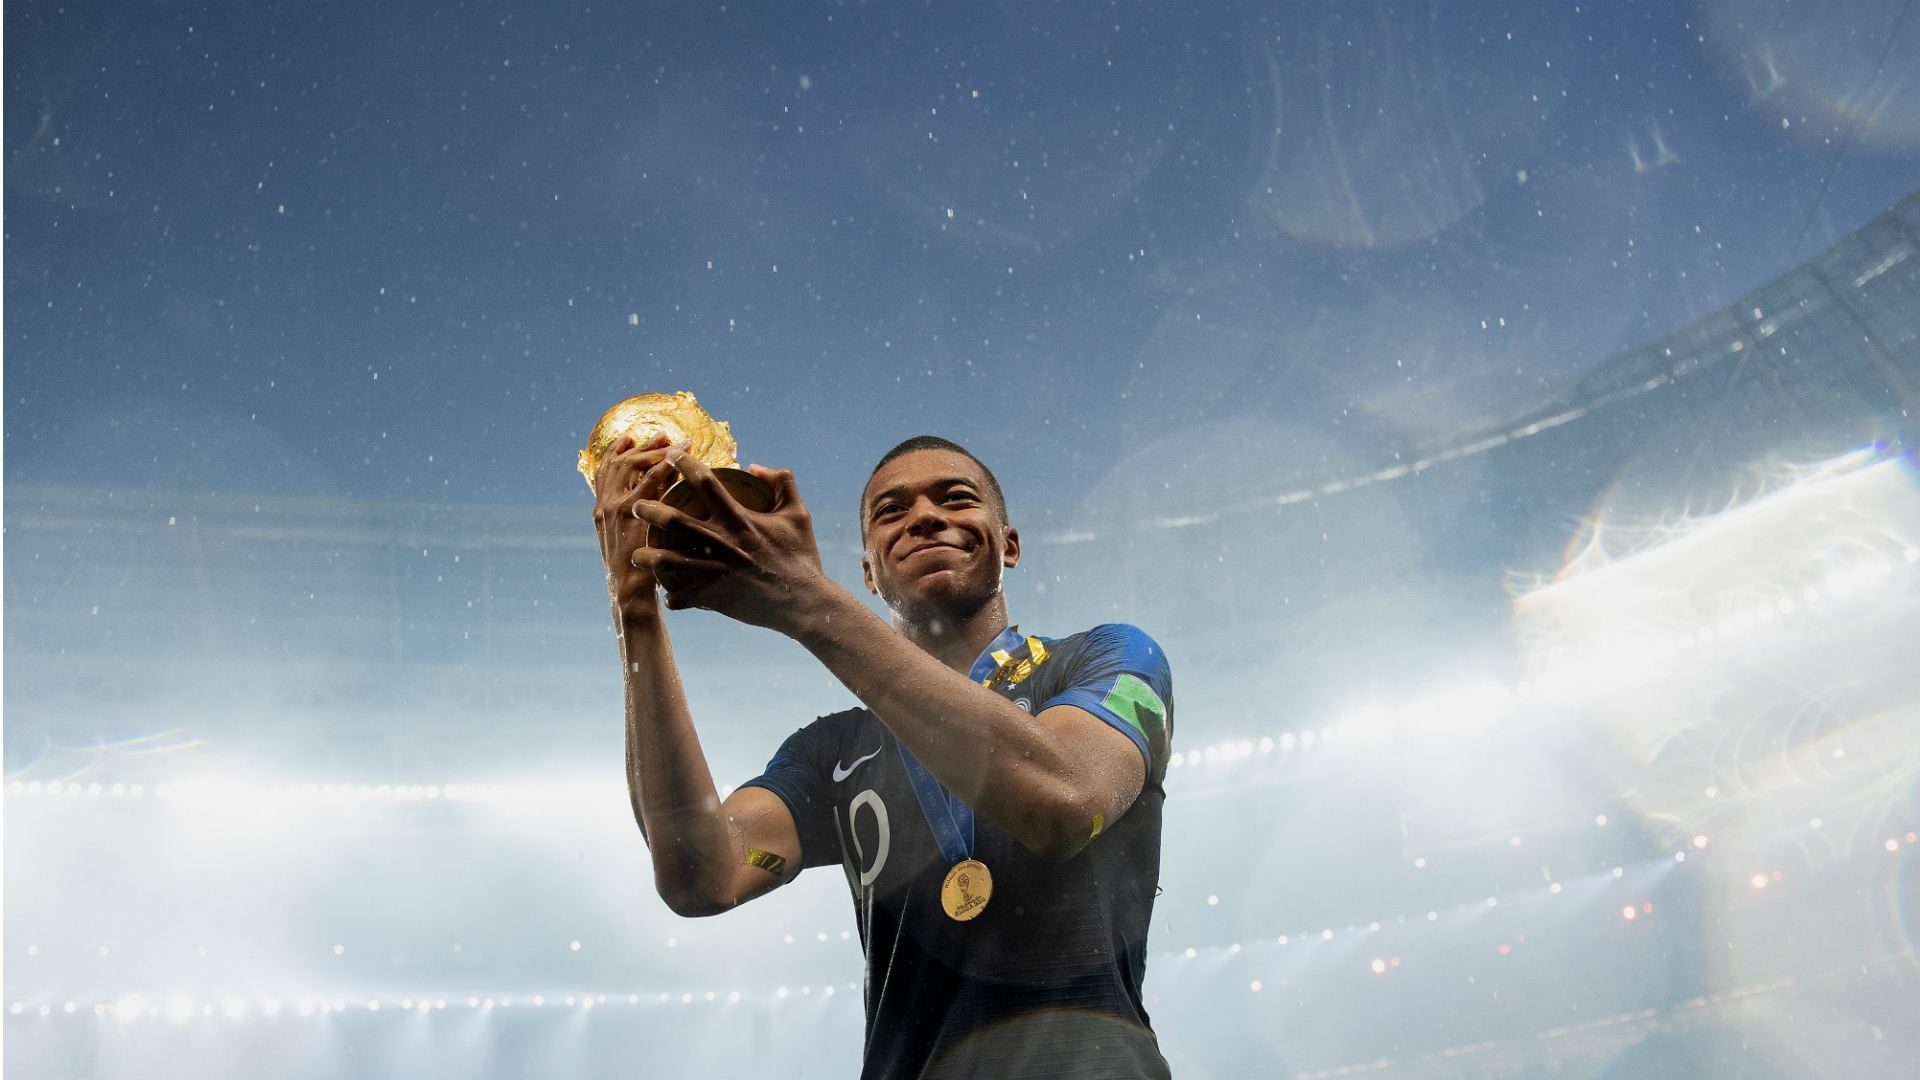 What is Kylian Mbappe's net worth and how much does the PSG star